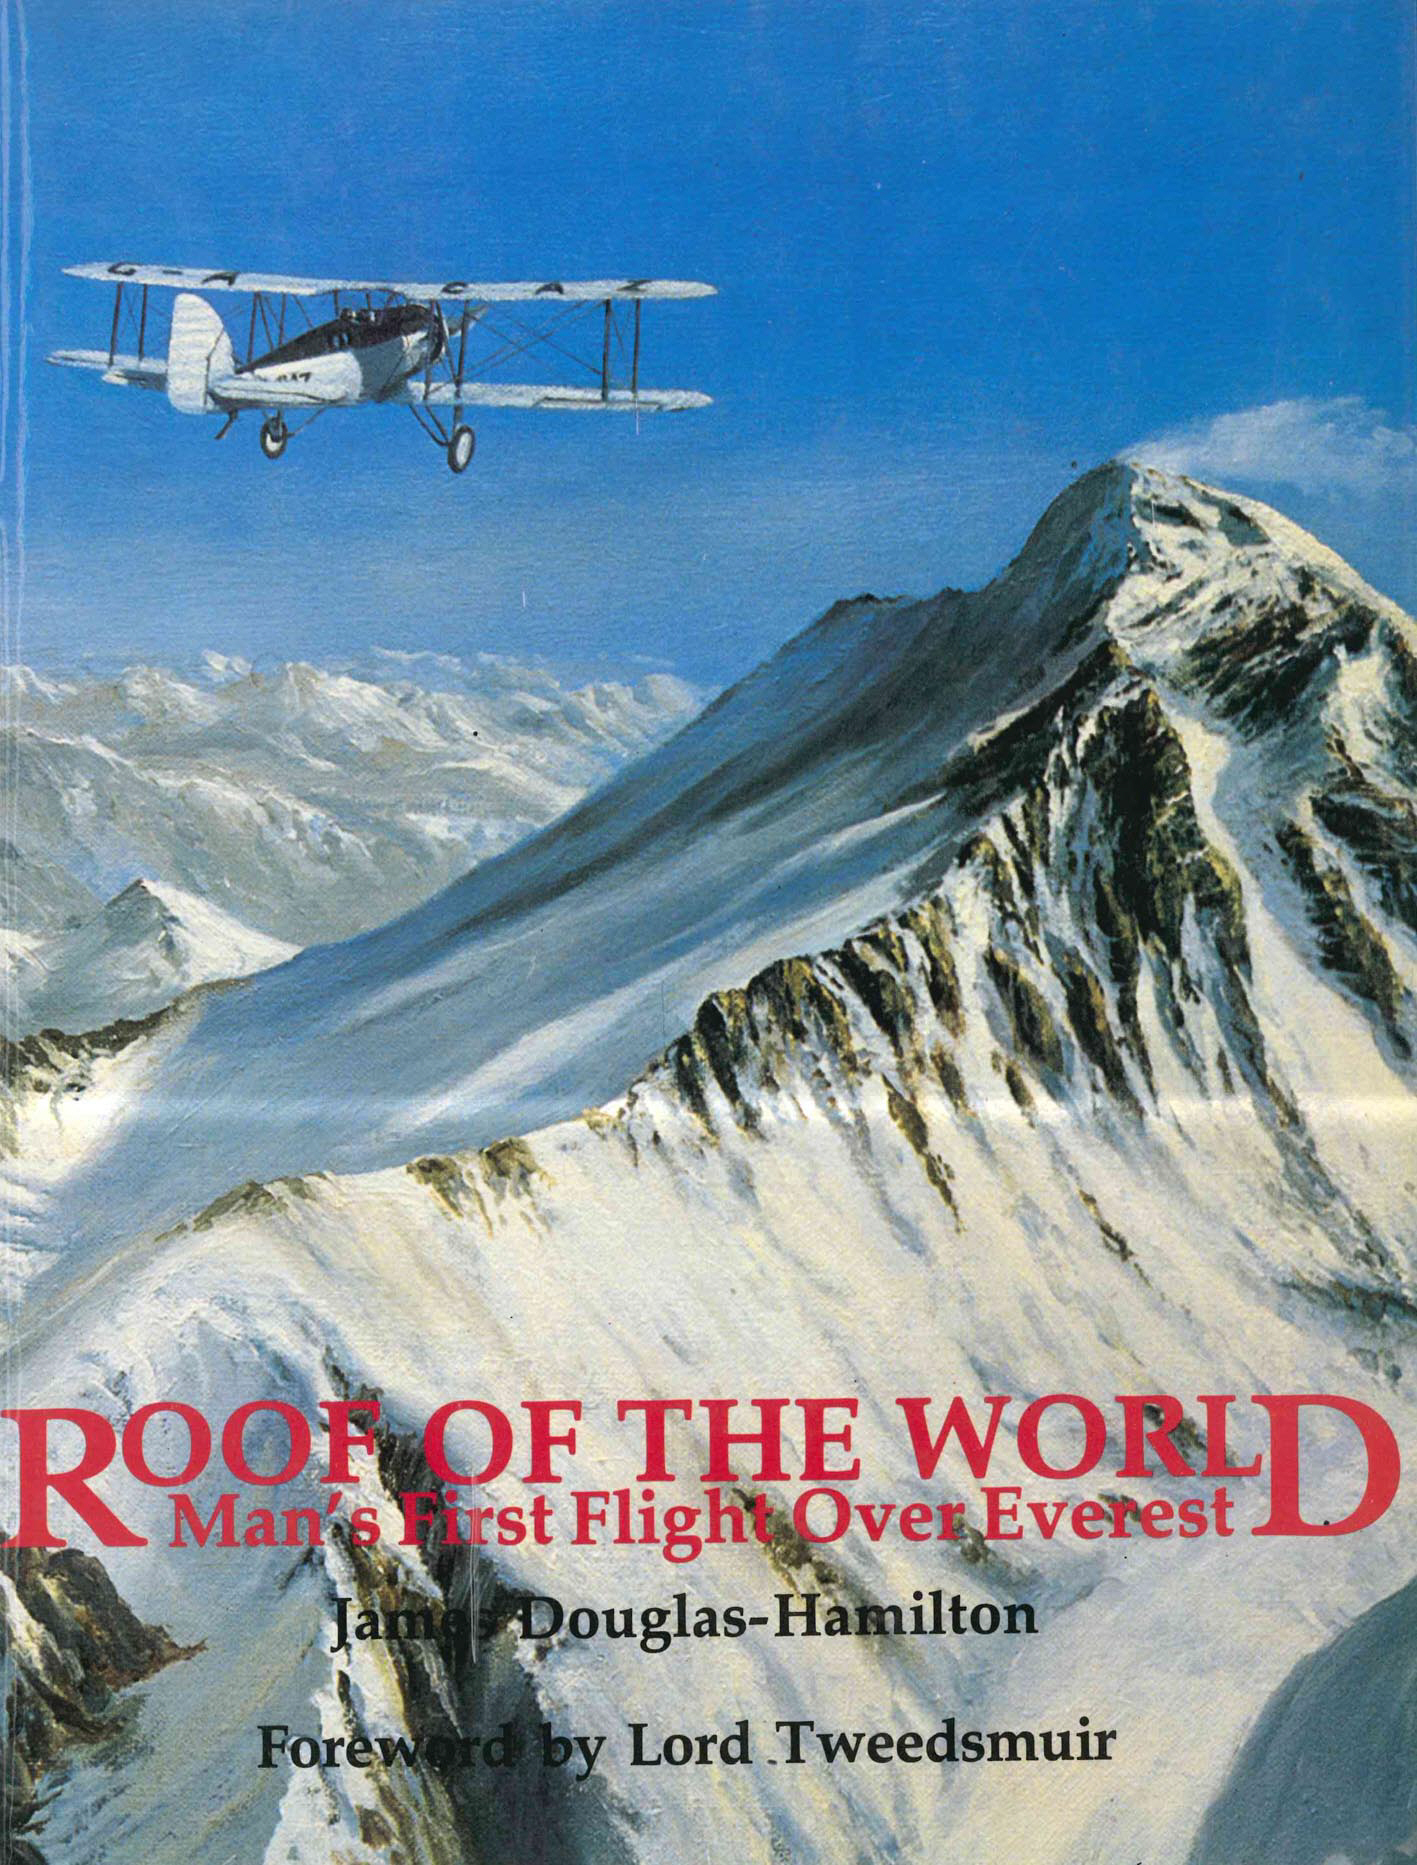 Roof of the World Man's First Flight Over Everest